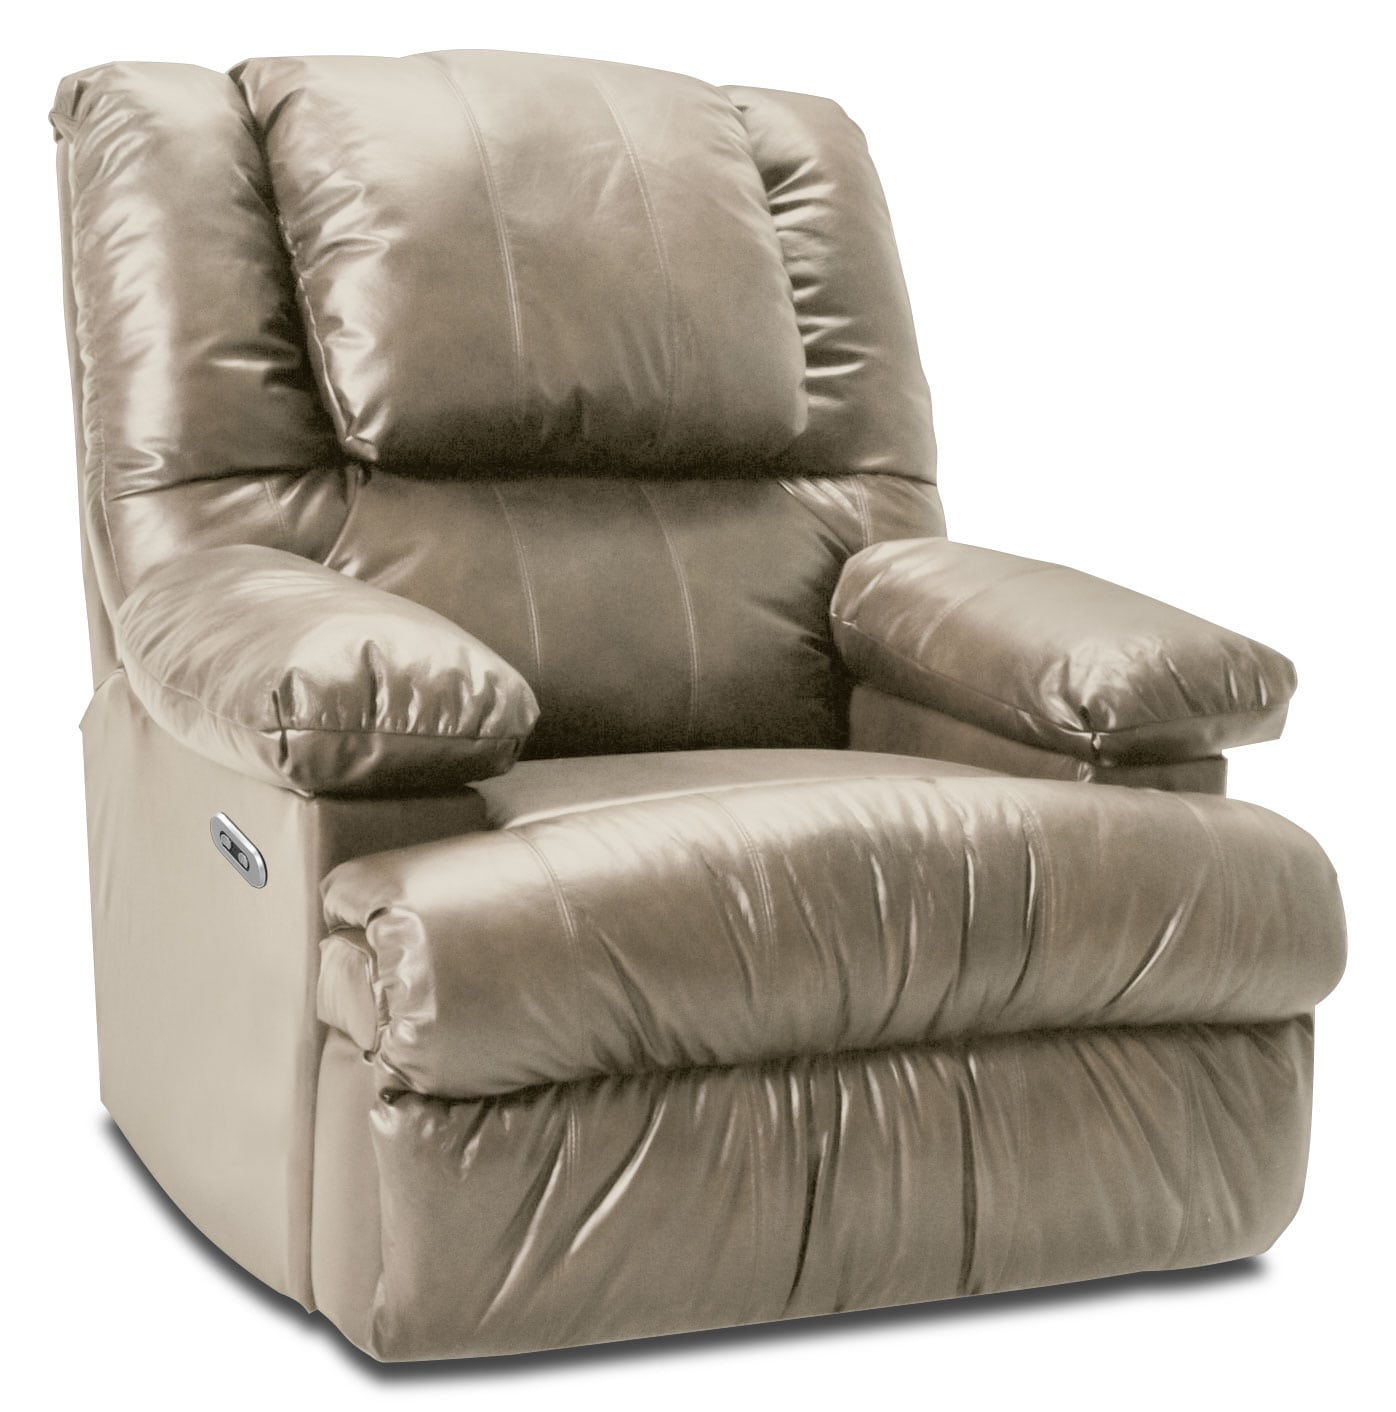 Living Room Furniture - Designed2B 5598 Bonded Leather Power Recliner with Massage and Storage - Putty